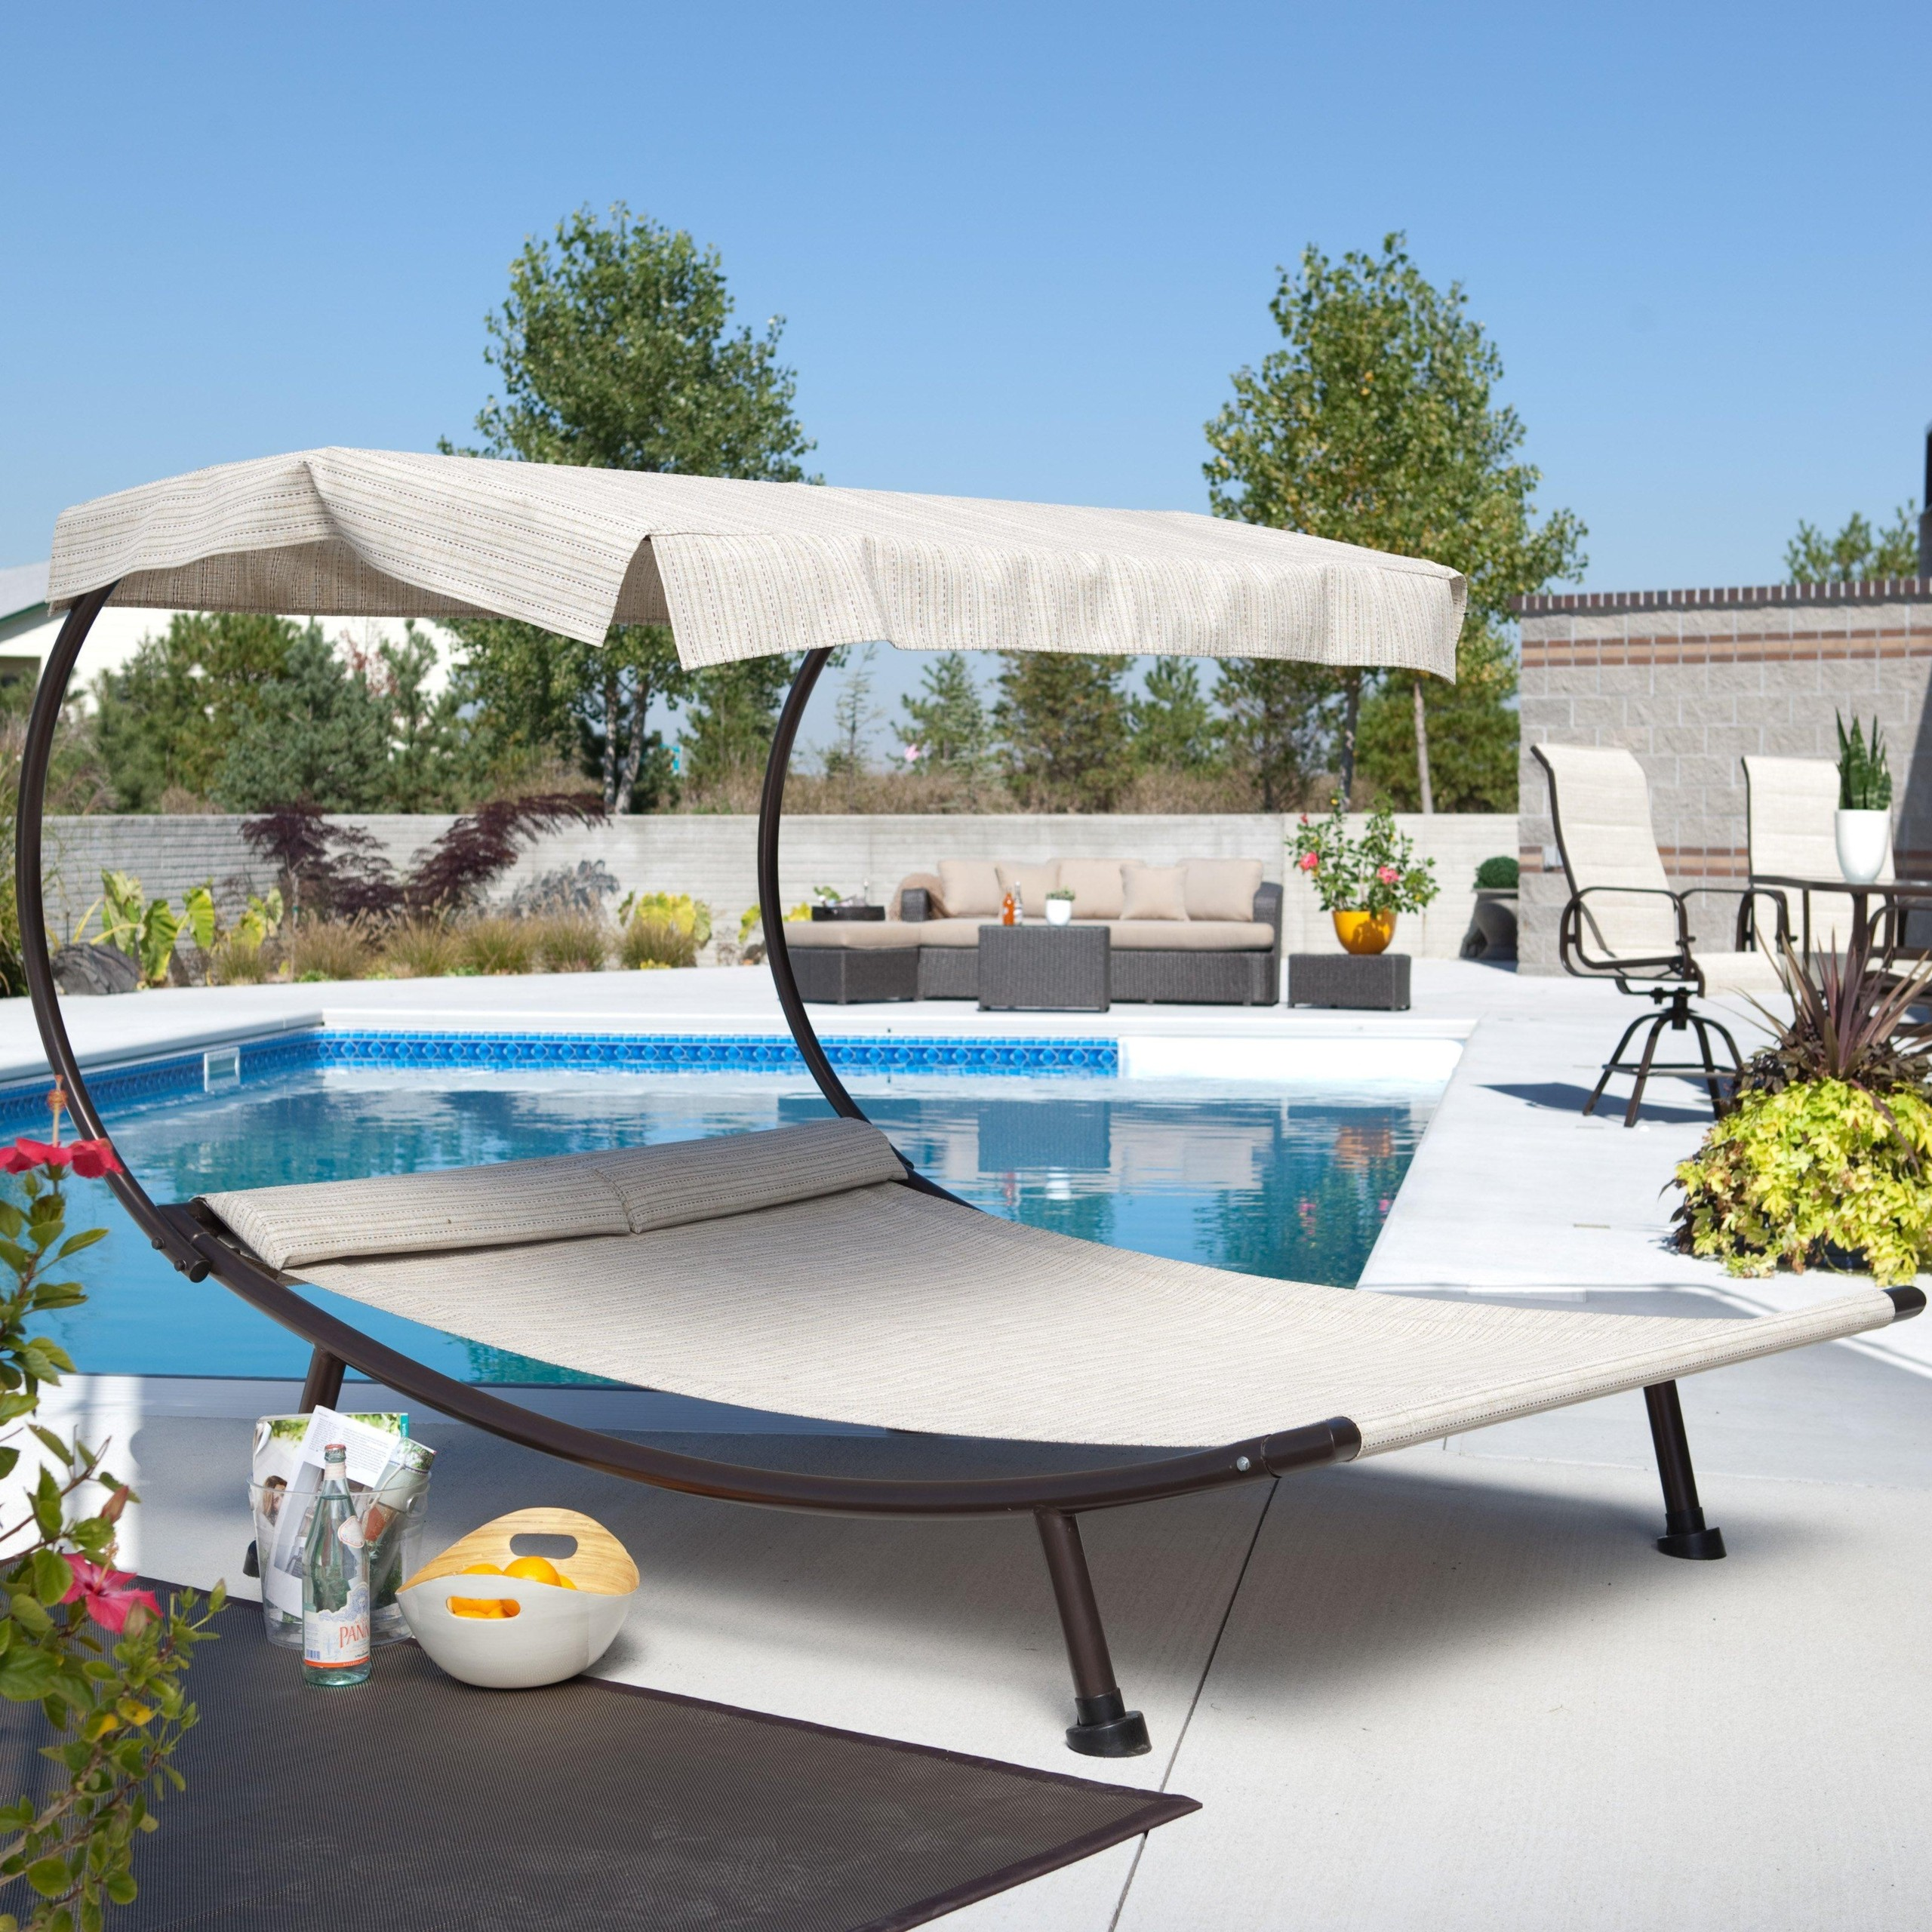 Pool lounge furniture & Pool Lounge Chairs - Foter